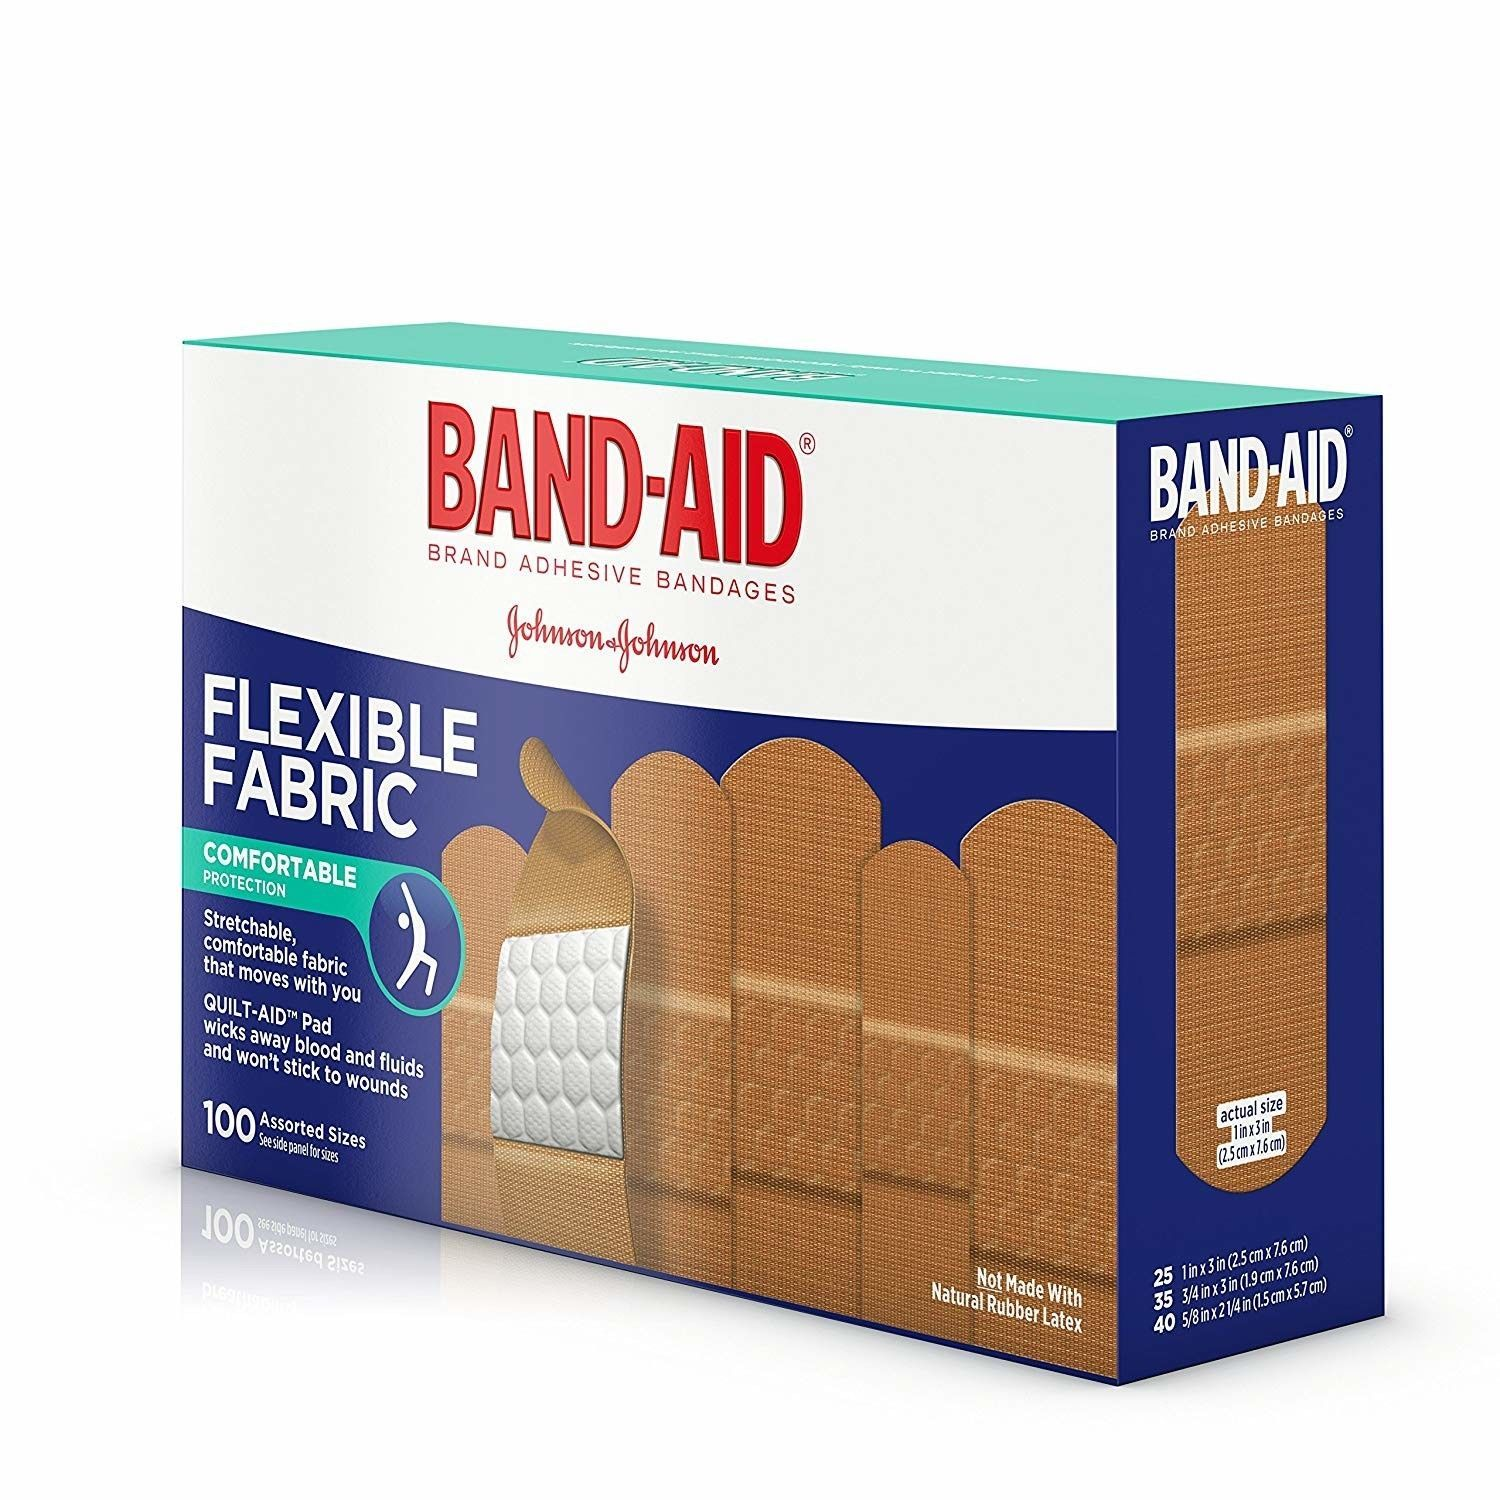 Band-Aid Brand Flexible Fabric Adhesive Bandages 100 Count New Johnson & Johnson